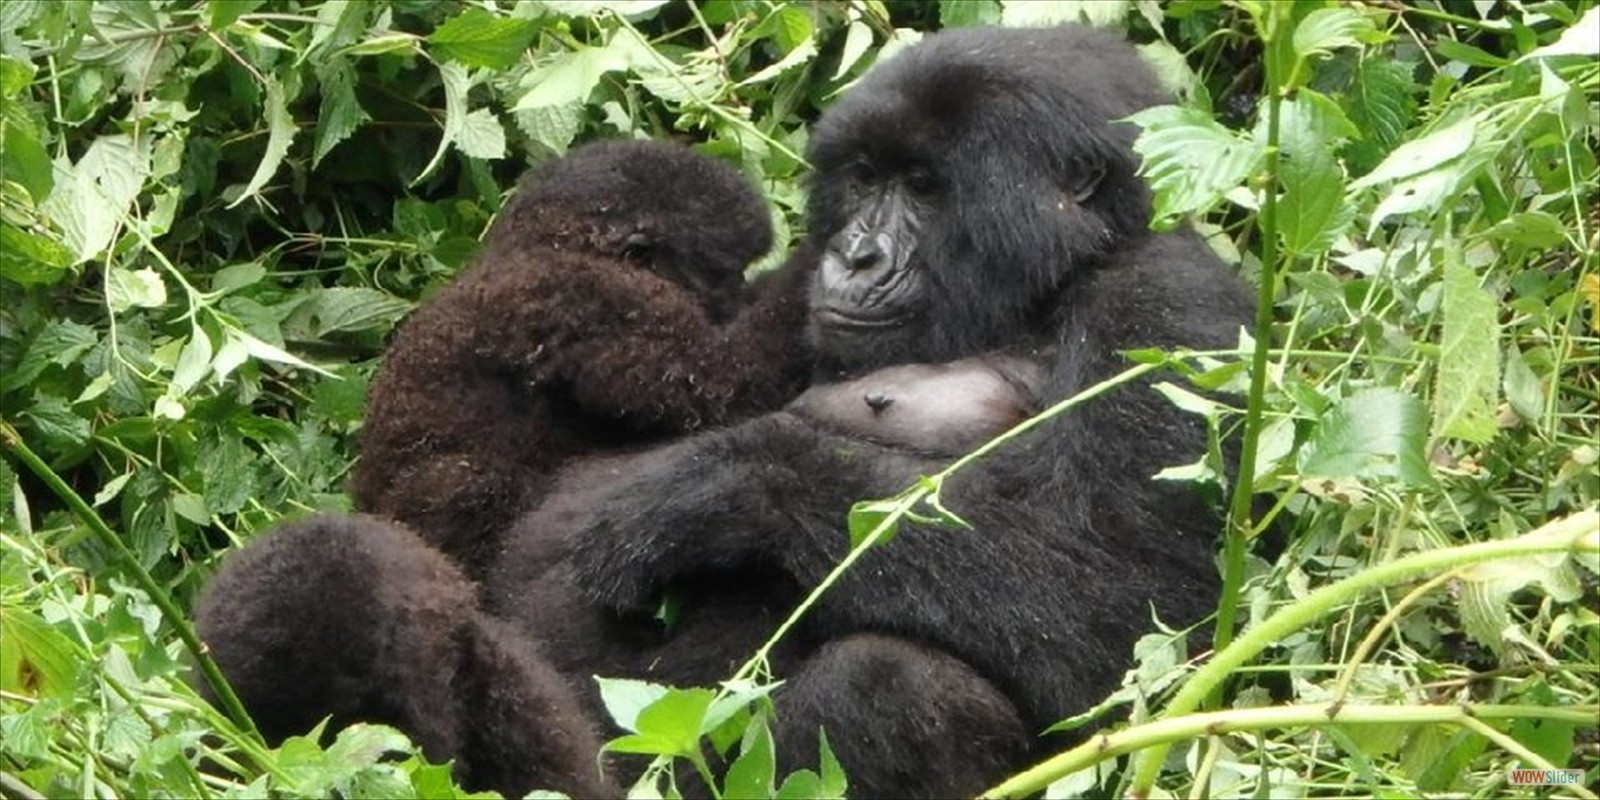 GORILLA SAFARIS RWANDA VOLCONOES NATIONAL PARK, ATTRACTIONS, ACTIVITIES, WHERE TO STAY, WHAT TO DO, VOLCANOES, NATIONAL, PARK, RWANDA,TOURIST, BISATE LODGE, GOVERNORS LODGE, CAR HIRE, RENTAL, PERMITS, WHAT TO BRING, SEE, SABYINYO SILVERBACK LODGE